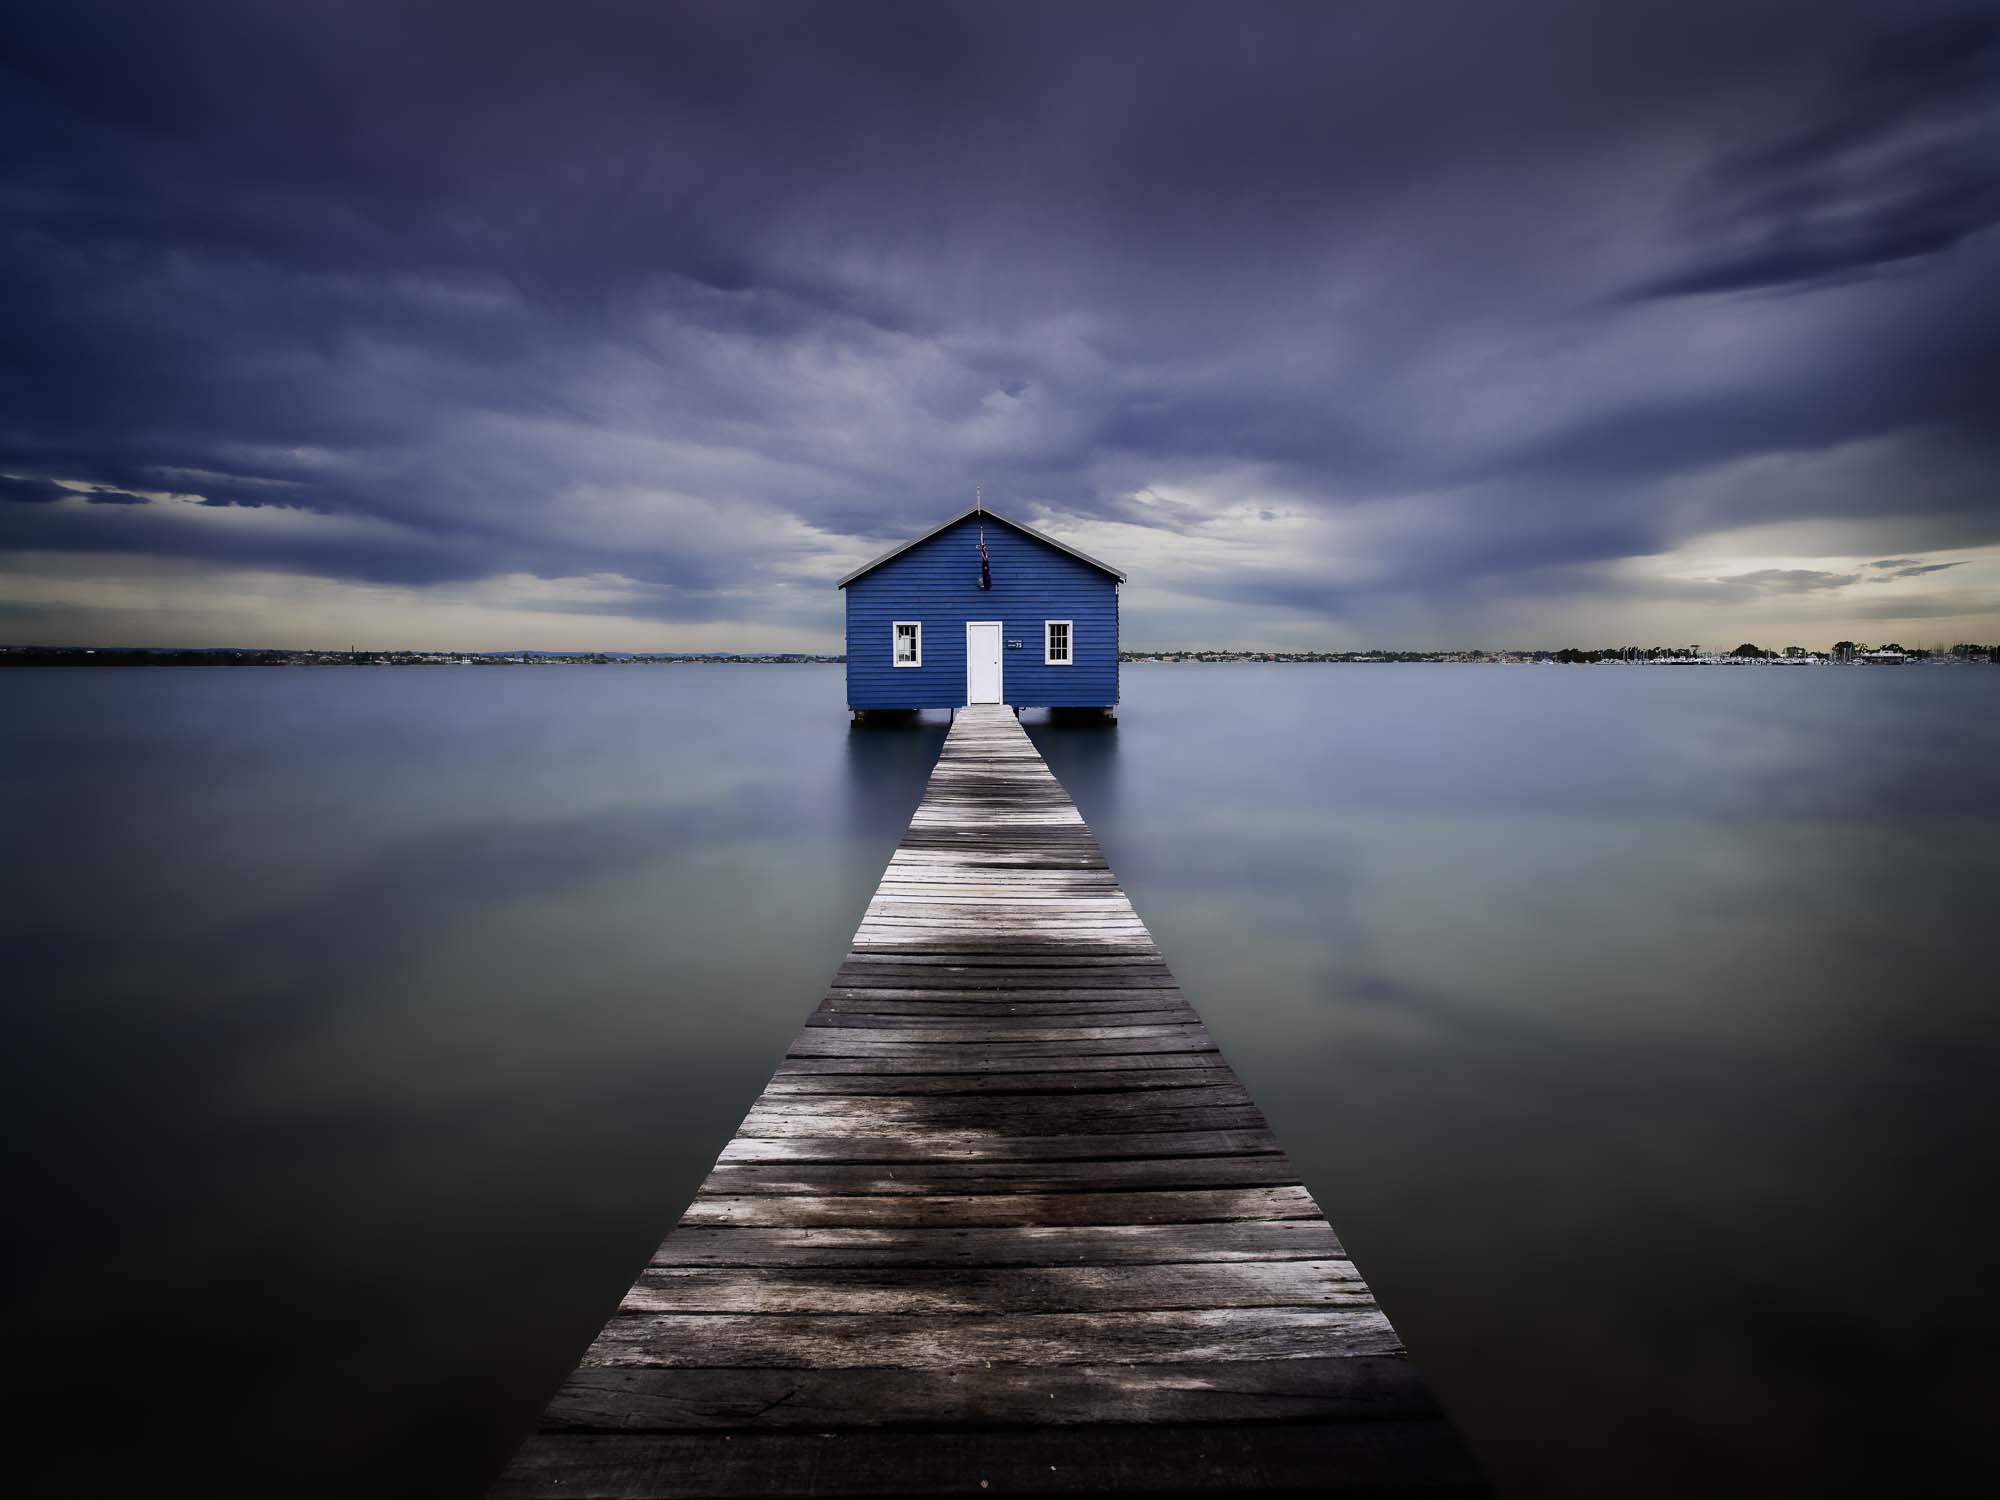 The Blue Boatshed by Leah Kennedy